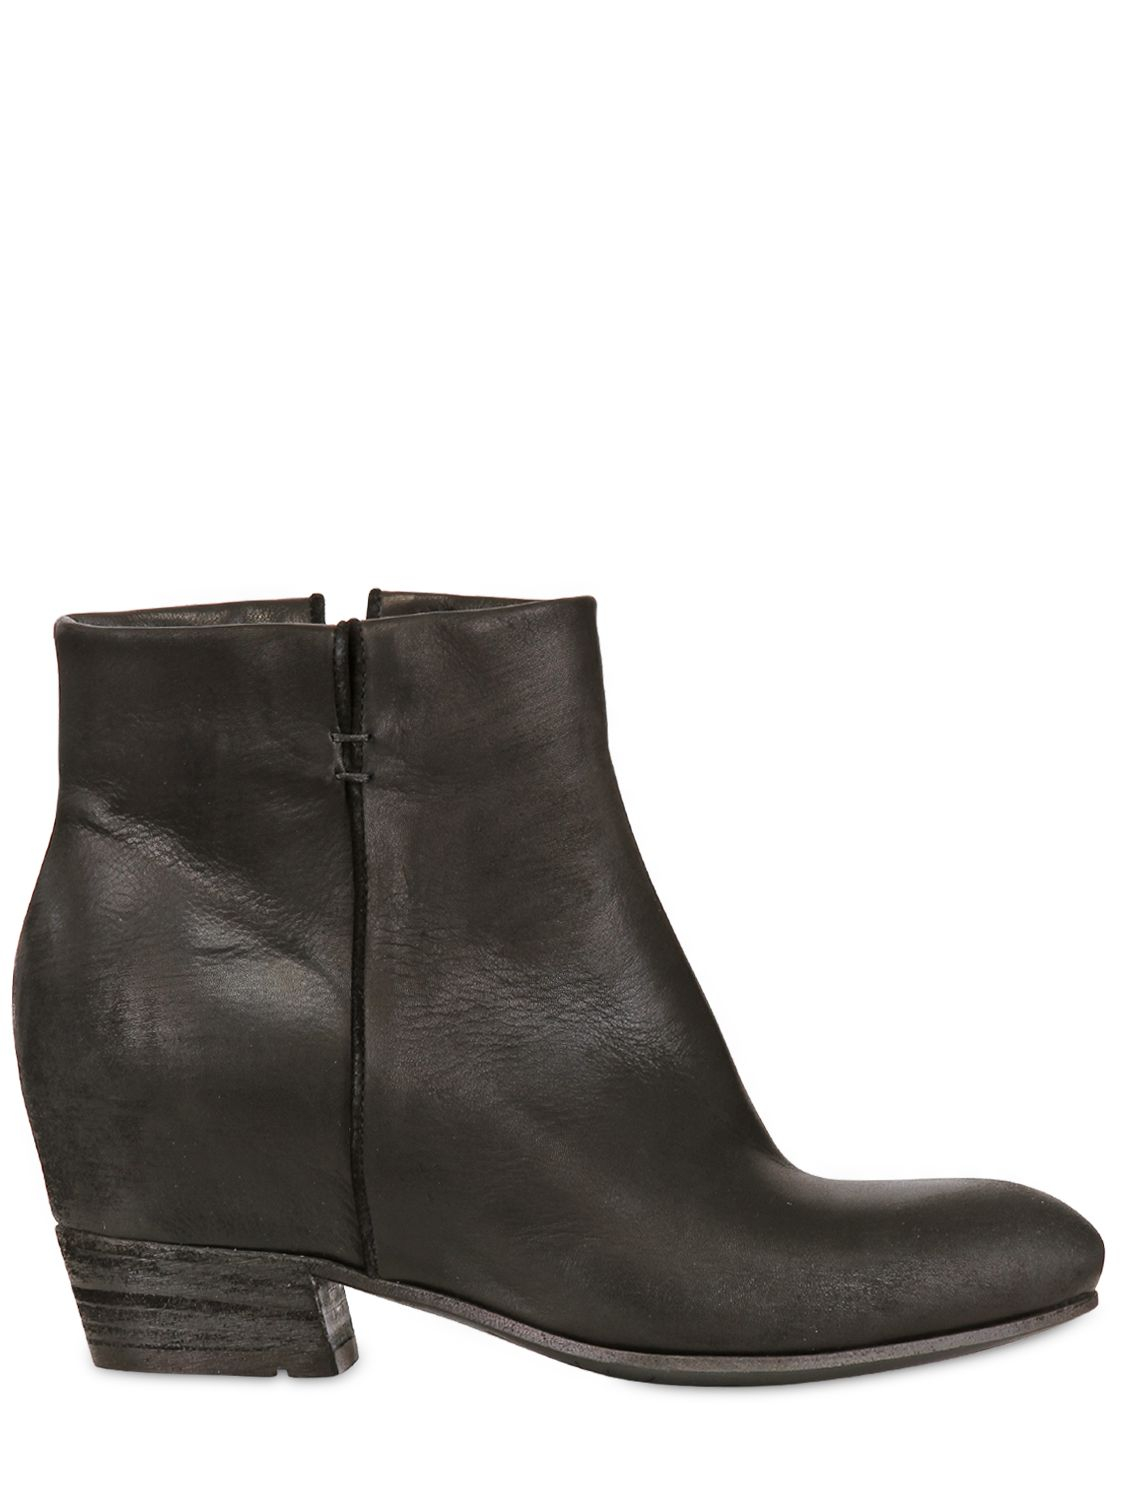 Strategia 80MM LEATHER ANKLE BOOTS NByWftm9